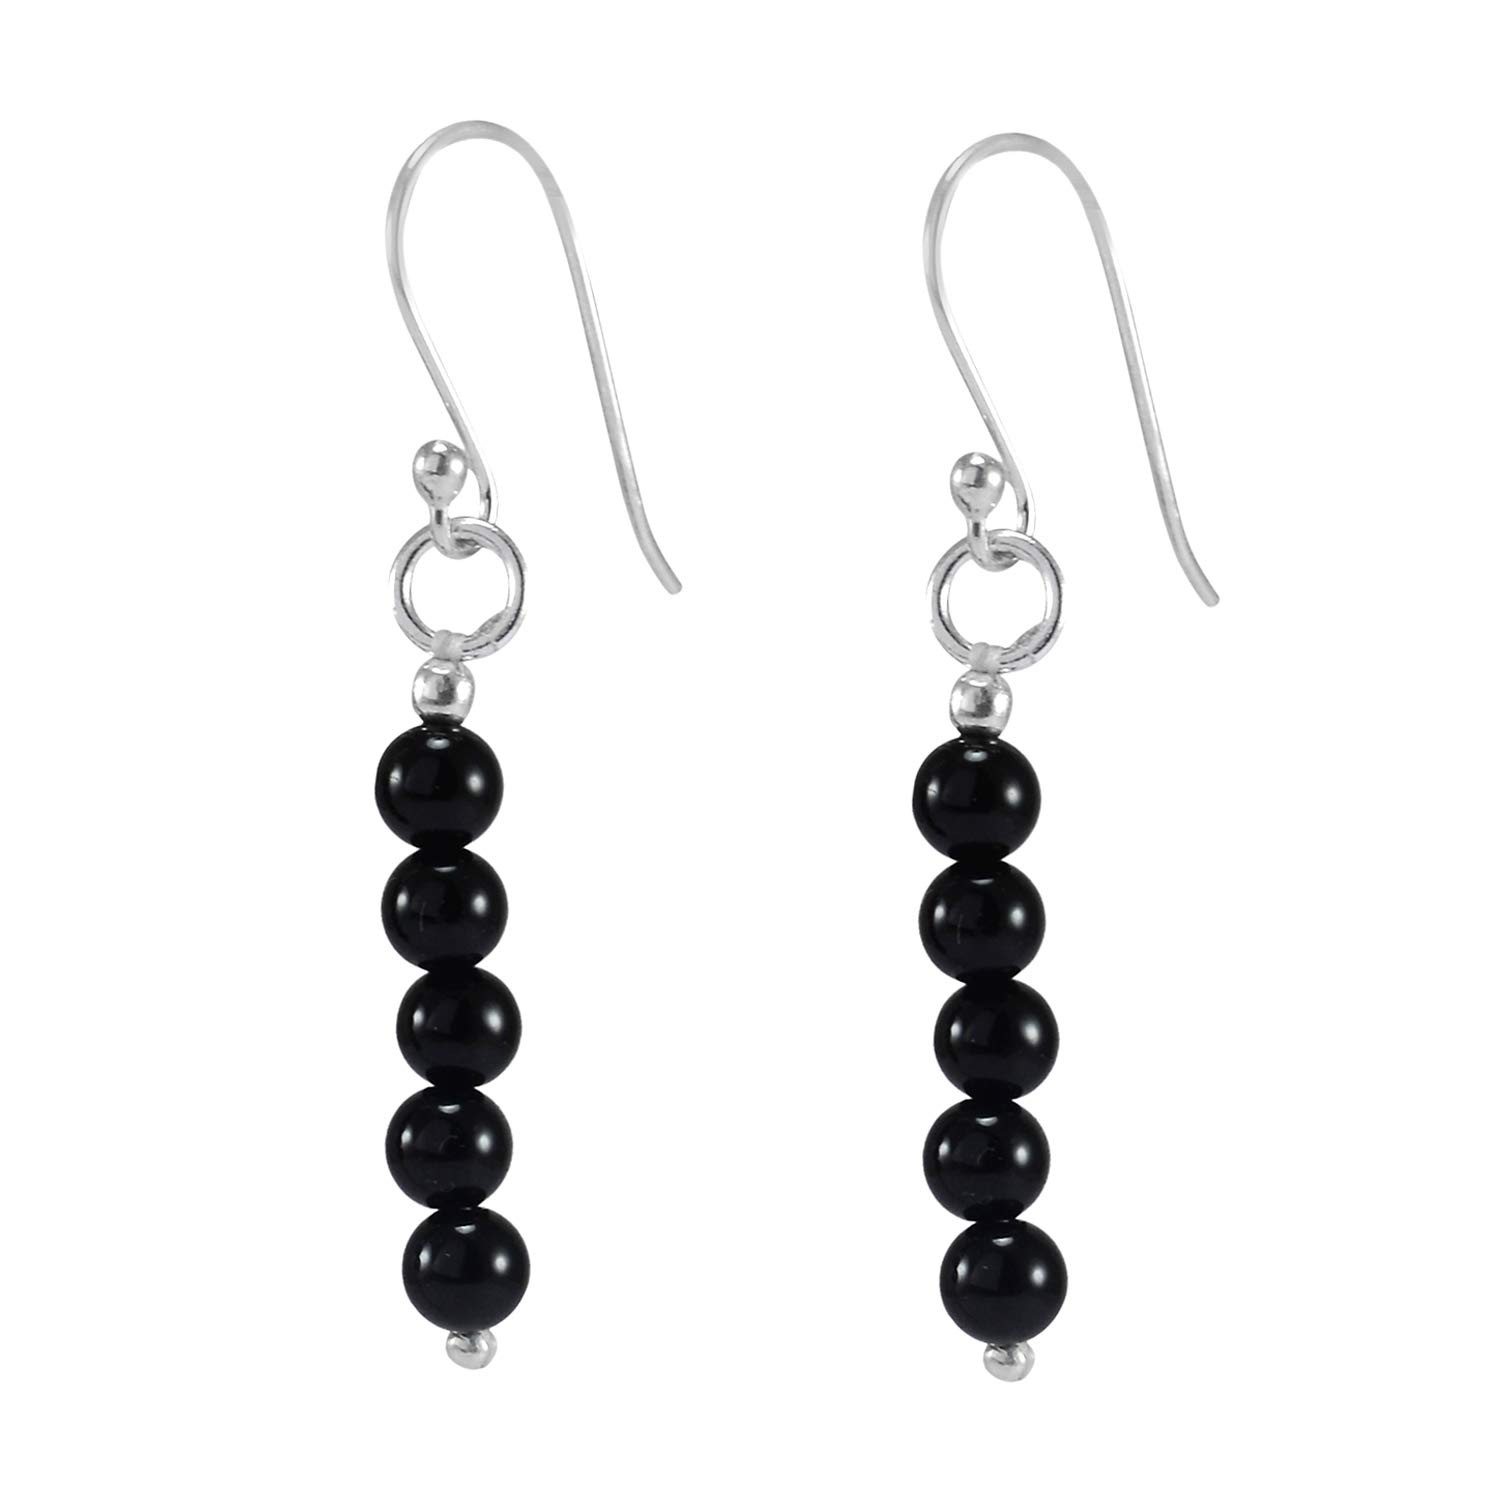 Handmade Jewelry Manufacturer Black Onyx// 925 Sterling Silver// 5 Bead Stone Round Beaded//Dangle Long Earring Jaipur Rajasthan India